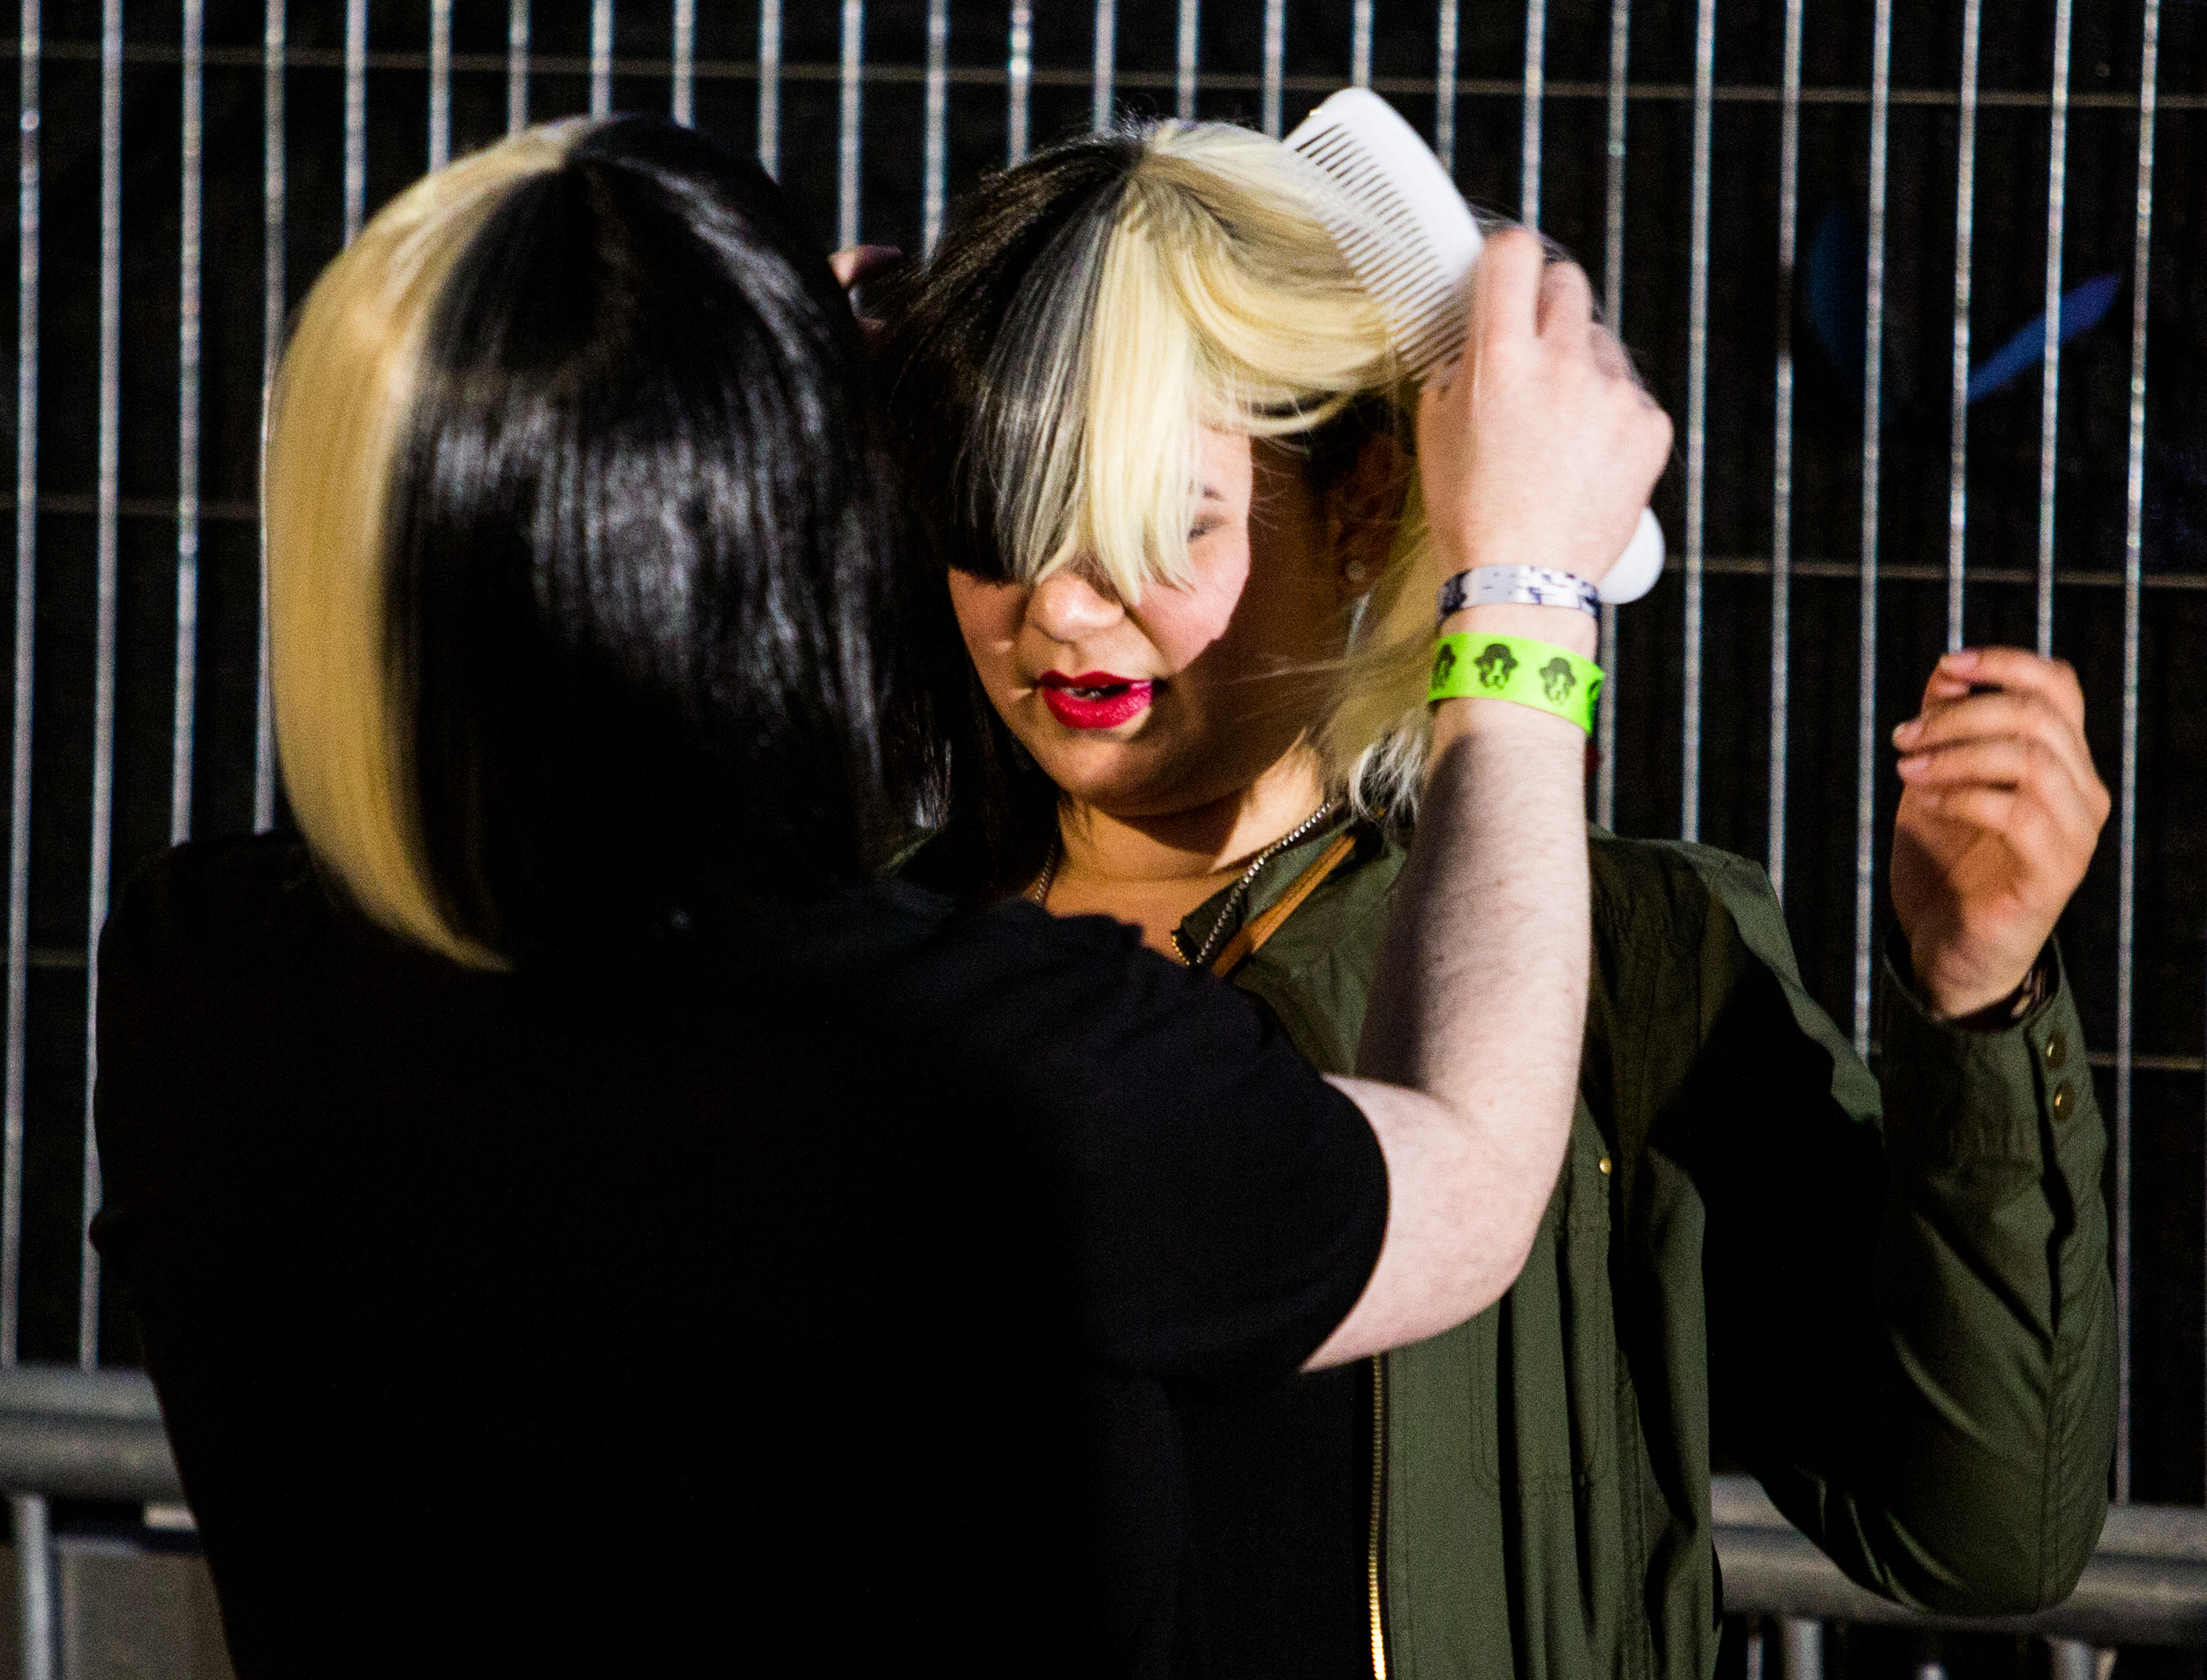 Two Sia fans adjust their wigs before her performance.